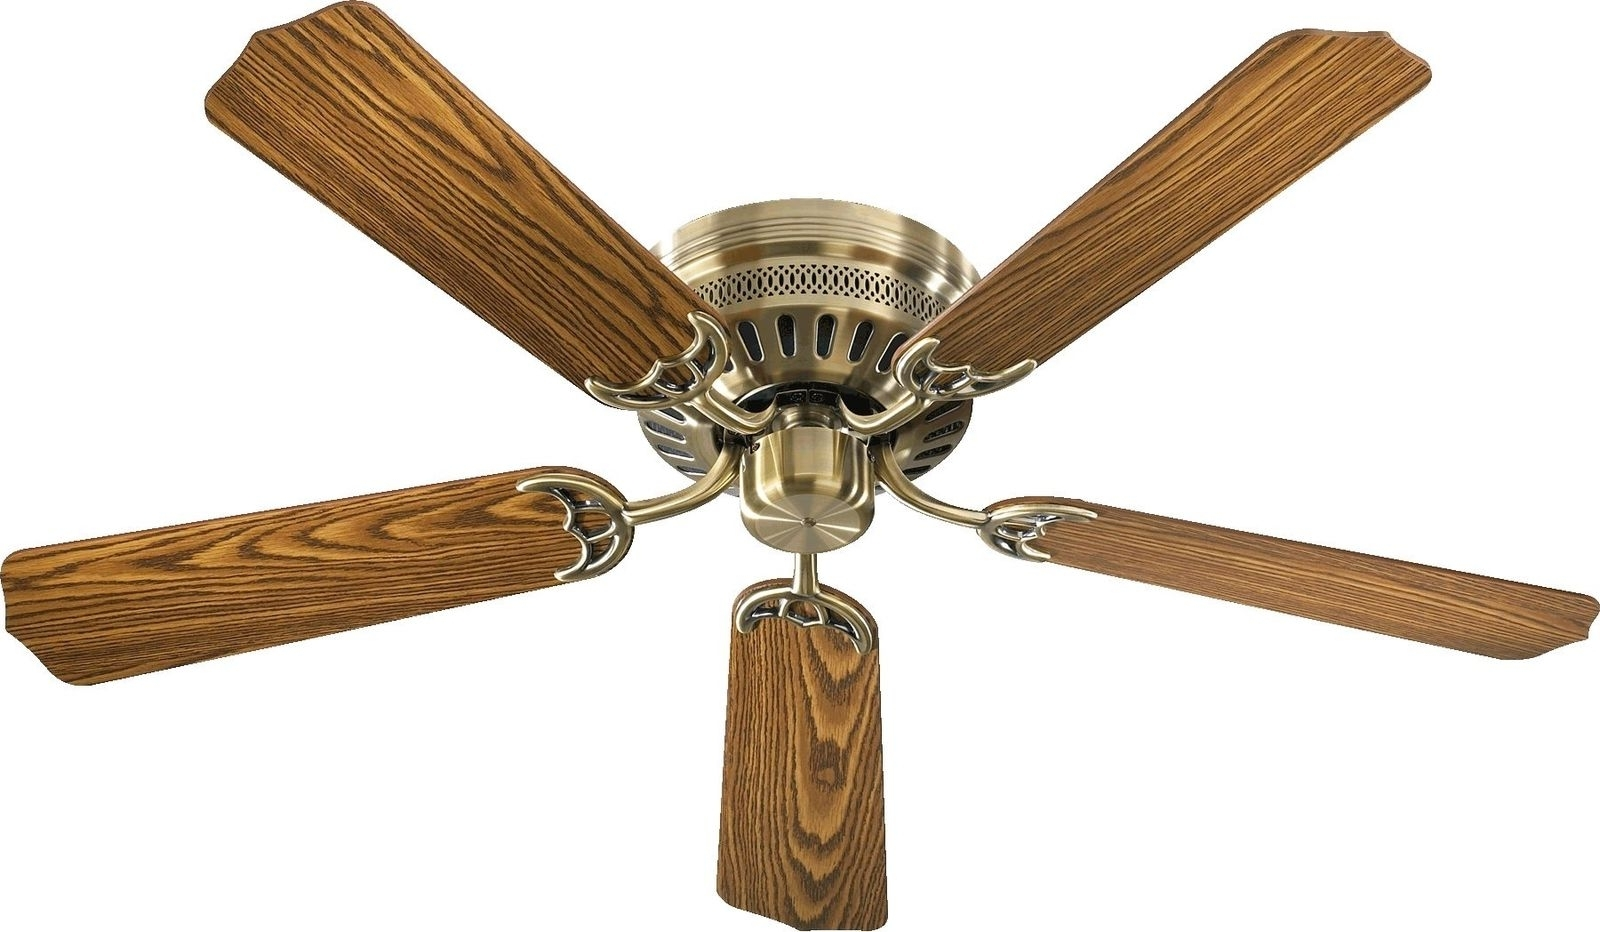 [%Free 3 Day Shipping] Quorum Lighting Custom Hugger Ceiling Fan With Famous Quorum Outdoor Ceiling Fans|Quorum Outdoor Ceiling Fans Pertaining To Current Free 3 Day Shipping] Quorum Lighting Custom Hugger Ceiling Fan|Favorite Quorum Outdoor Ceiling Fans With Free 3 Day Shipping] Quorum Lighting Custom Hugger Ceiling Fan|Latest Free 3 Day Shipping] Quorum Lighting Custom Hugger Ceiling Fan Intended For Quorum Outdoor Ceiling Fans%] (View 1 of 20)